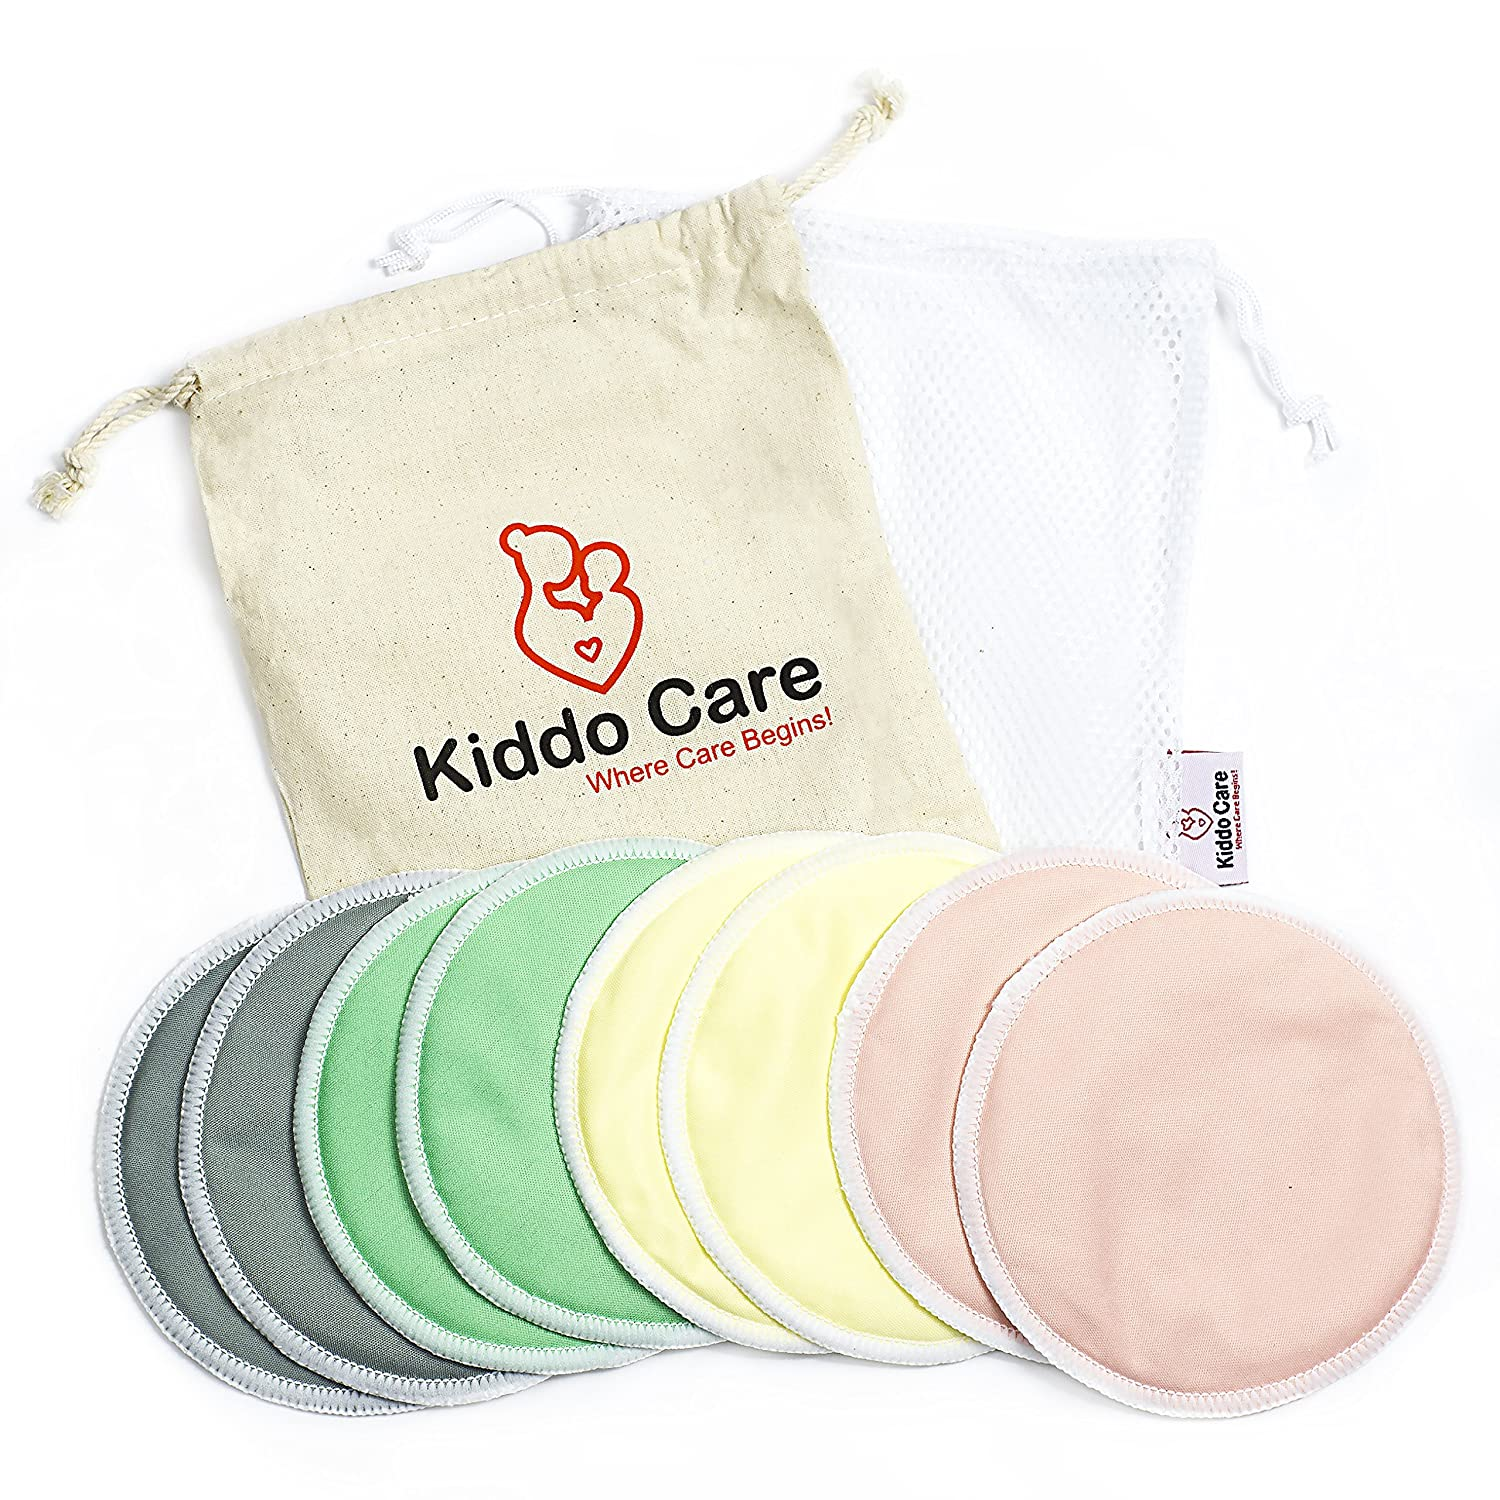 23f3b75277 BEST Washable Organic Bamboo Nursing Pads -8 PACK (4 pairs) Colored-  Reusable Breast Pads